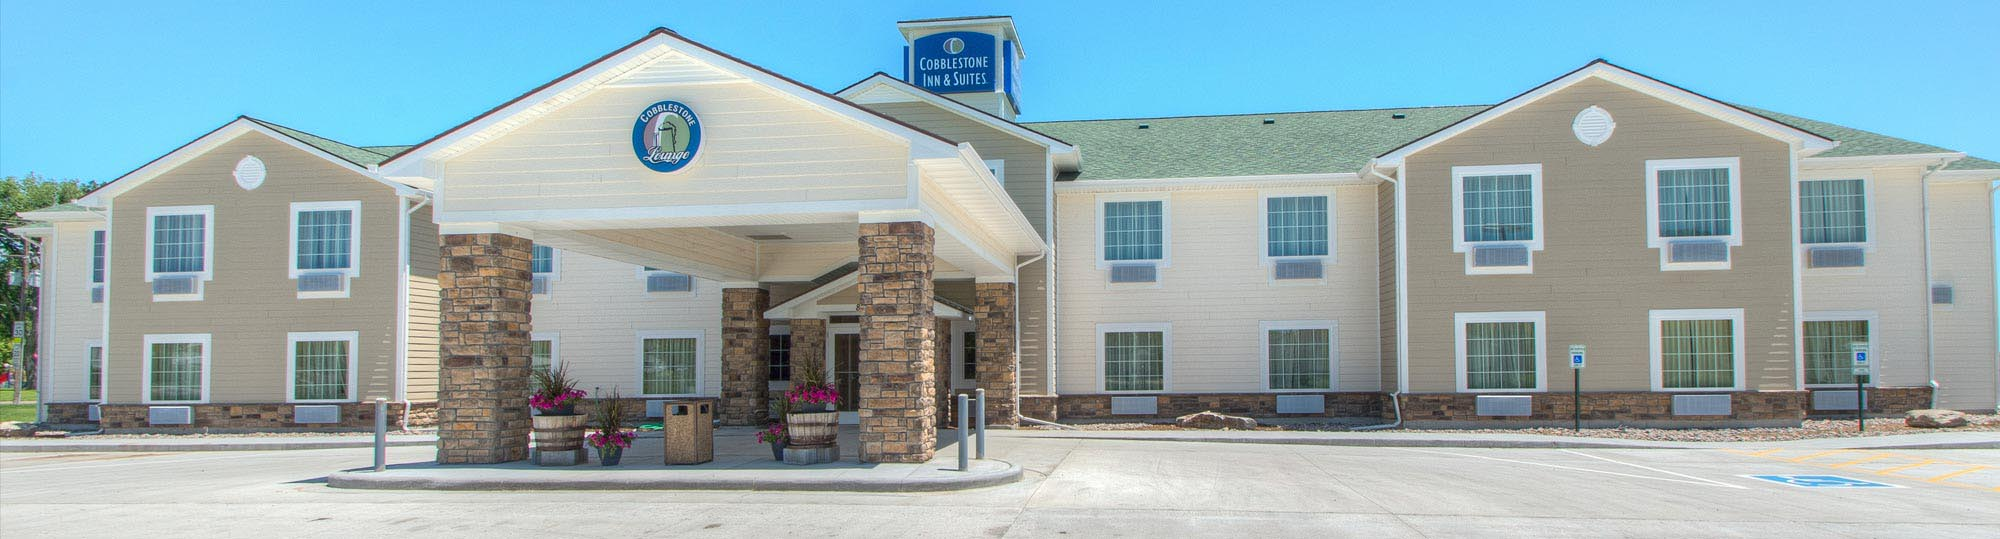 Cobblestone Inn and Suites Holyoke